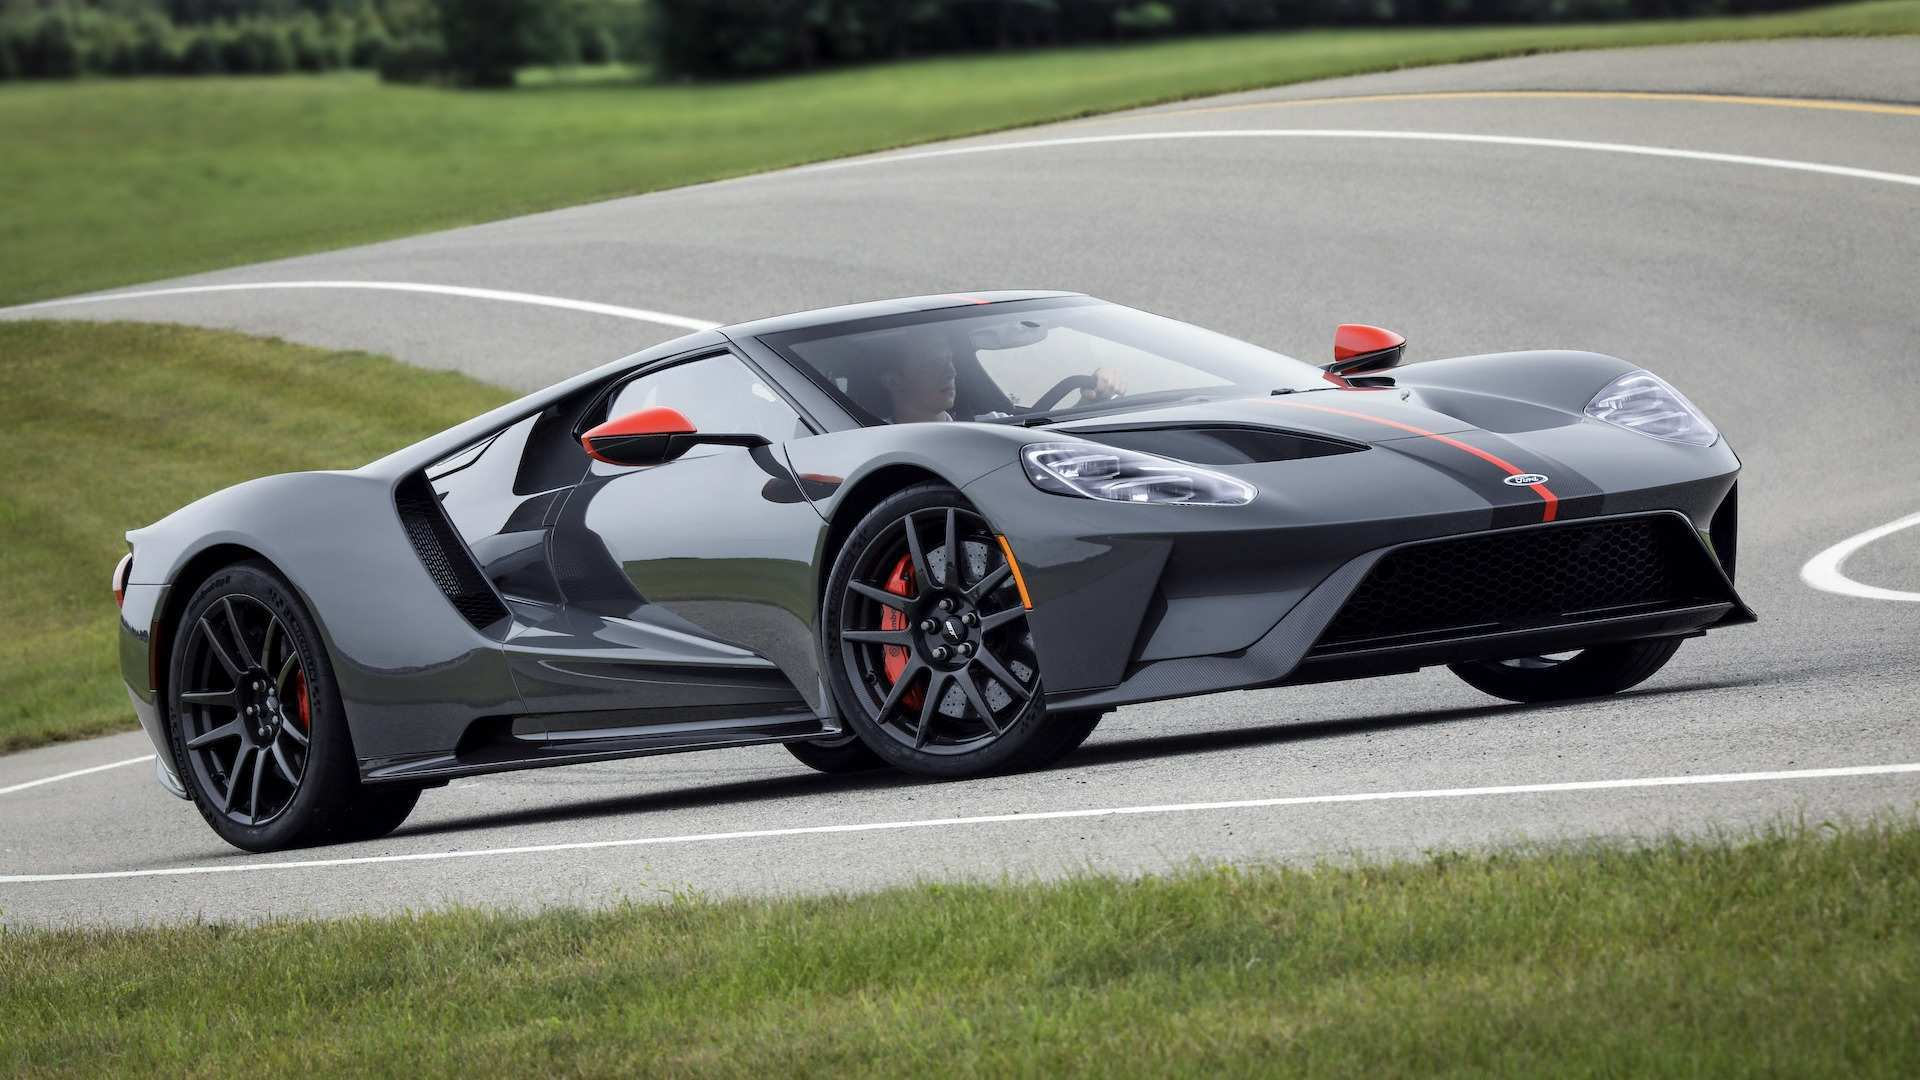 76 All New 2019 Ford Gt Supercar Price Design And Review